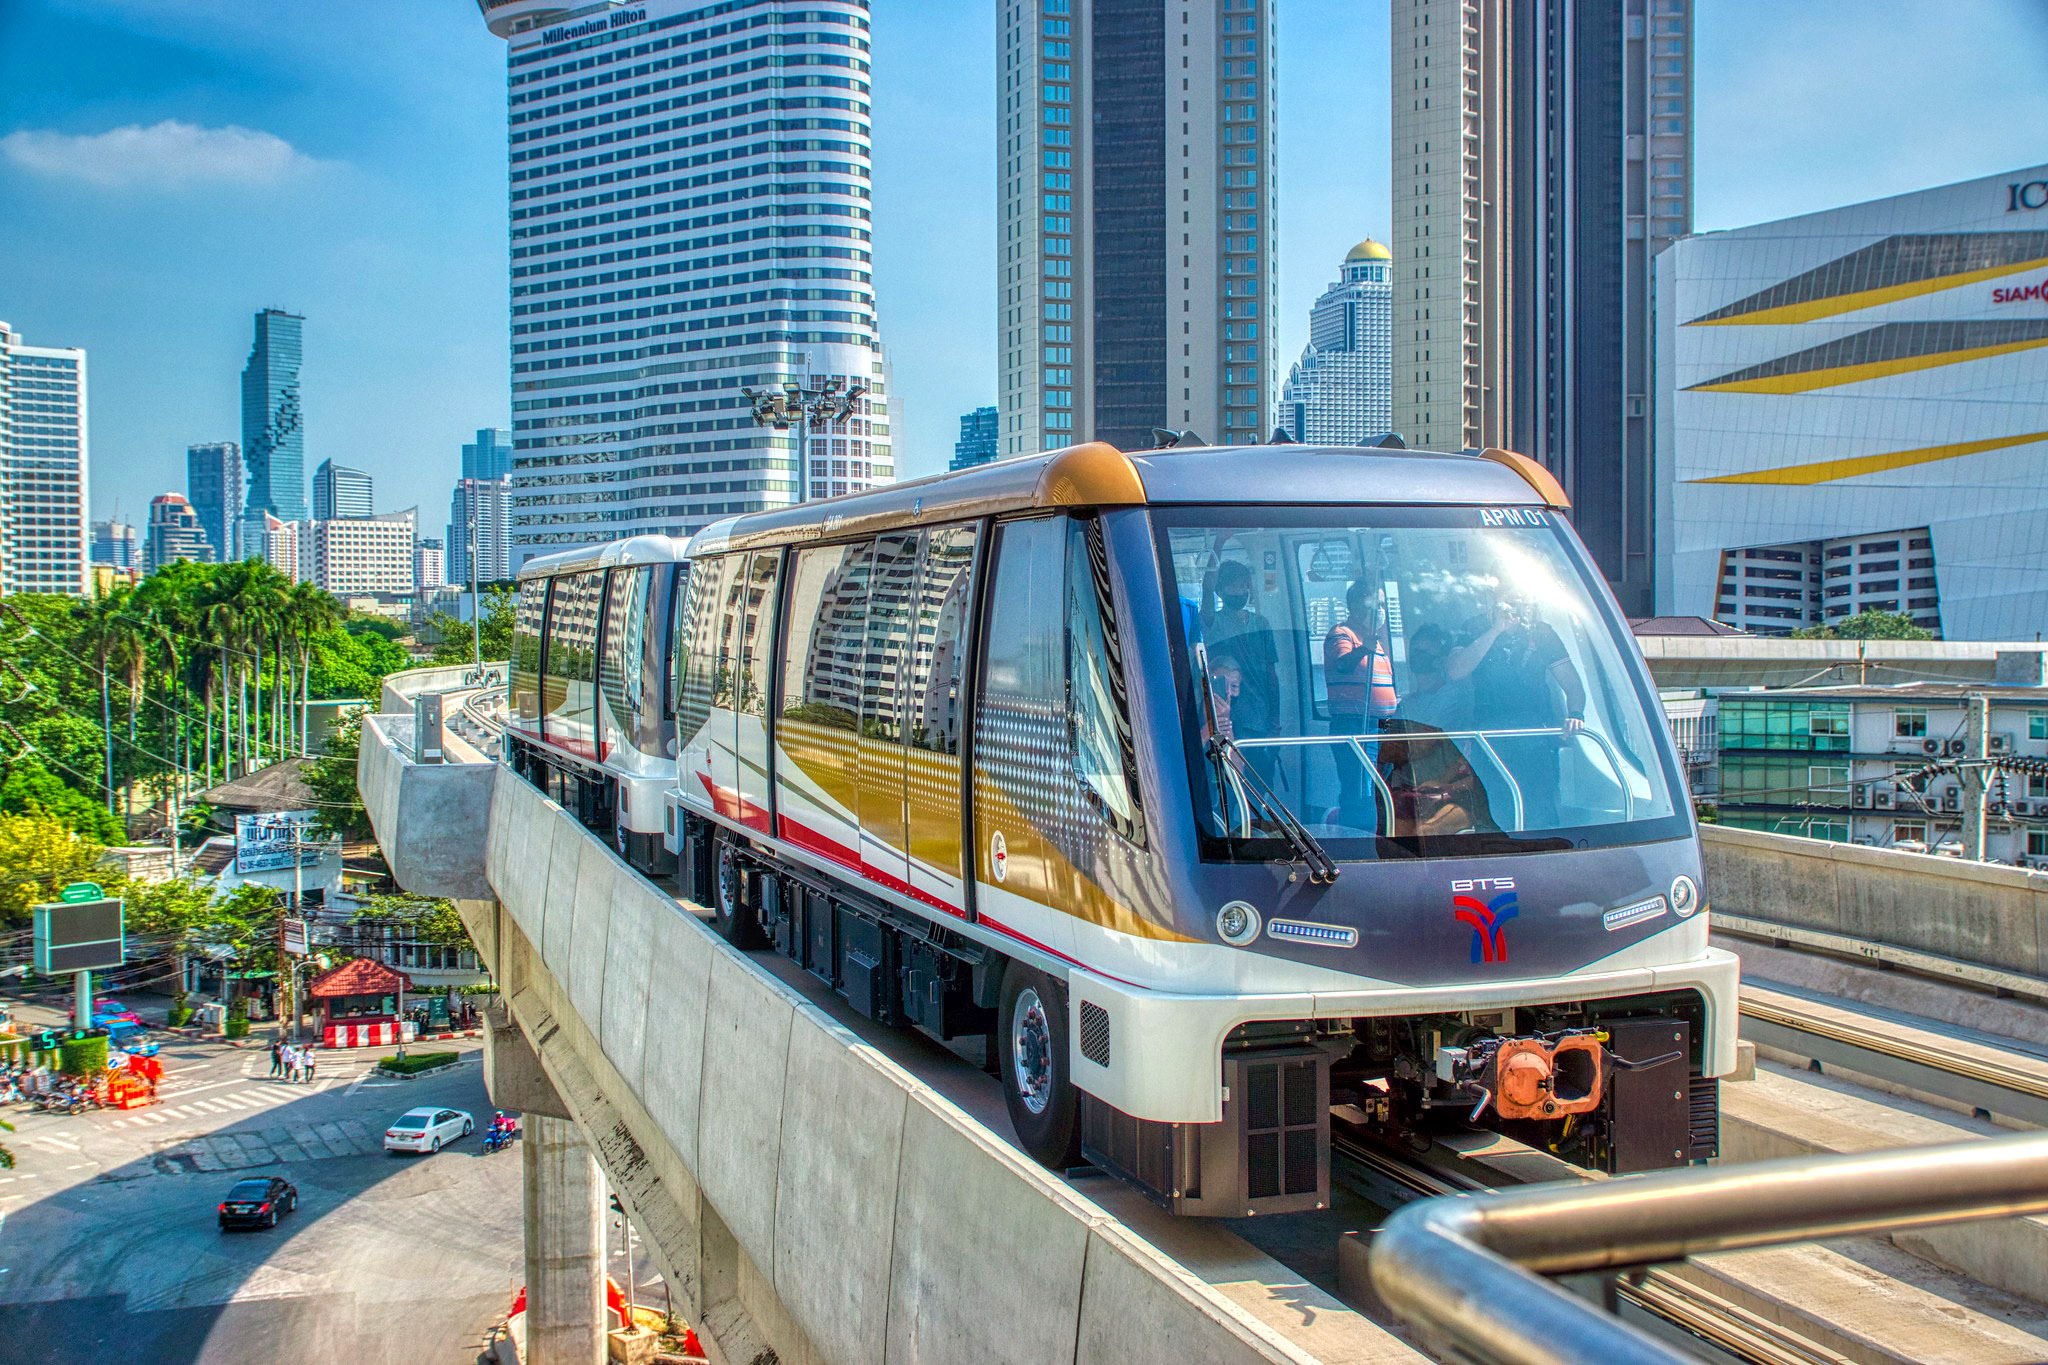 Gold Line People Mover at terminal station by Uwe Schwarzbach.jpg